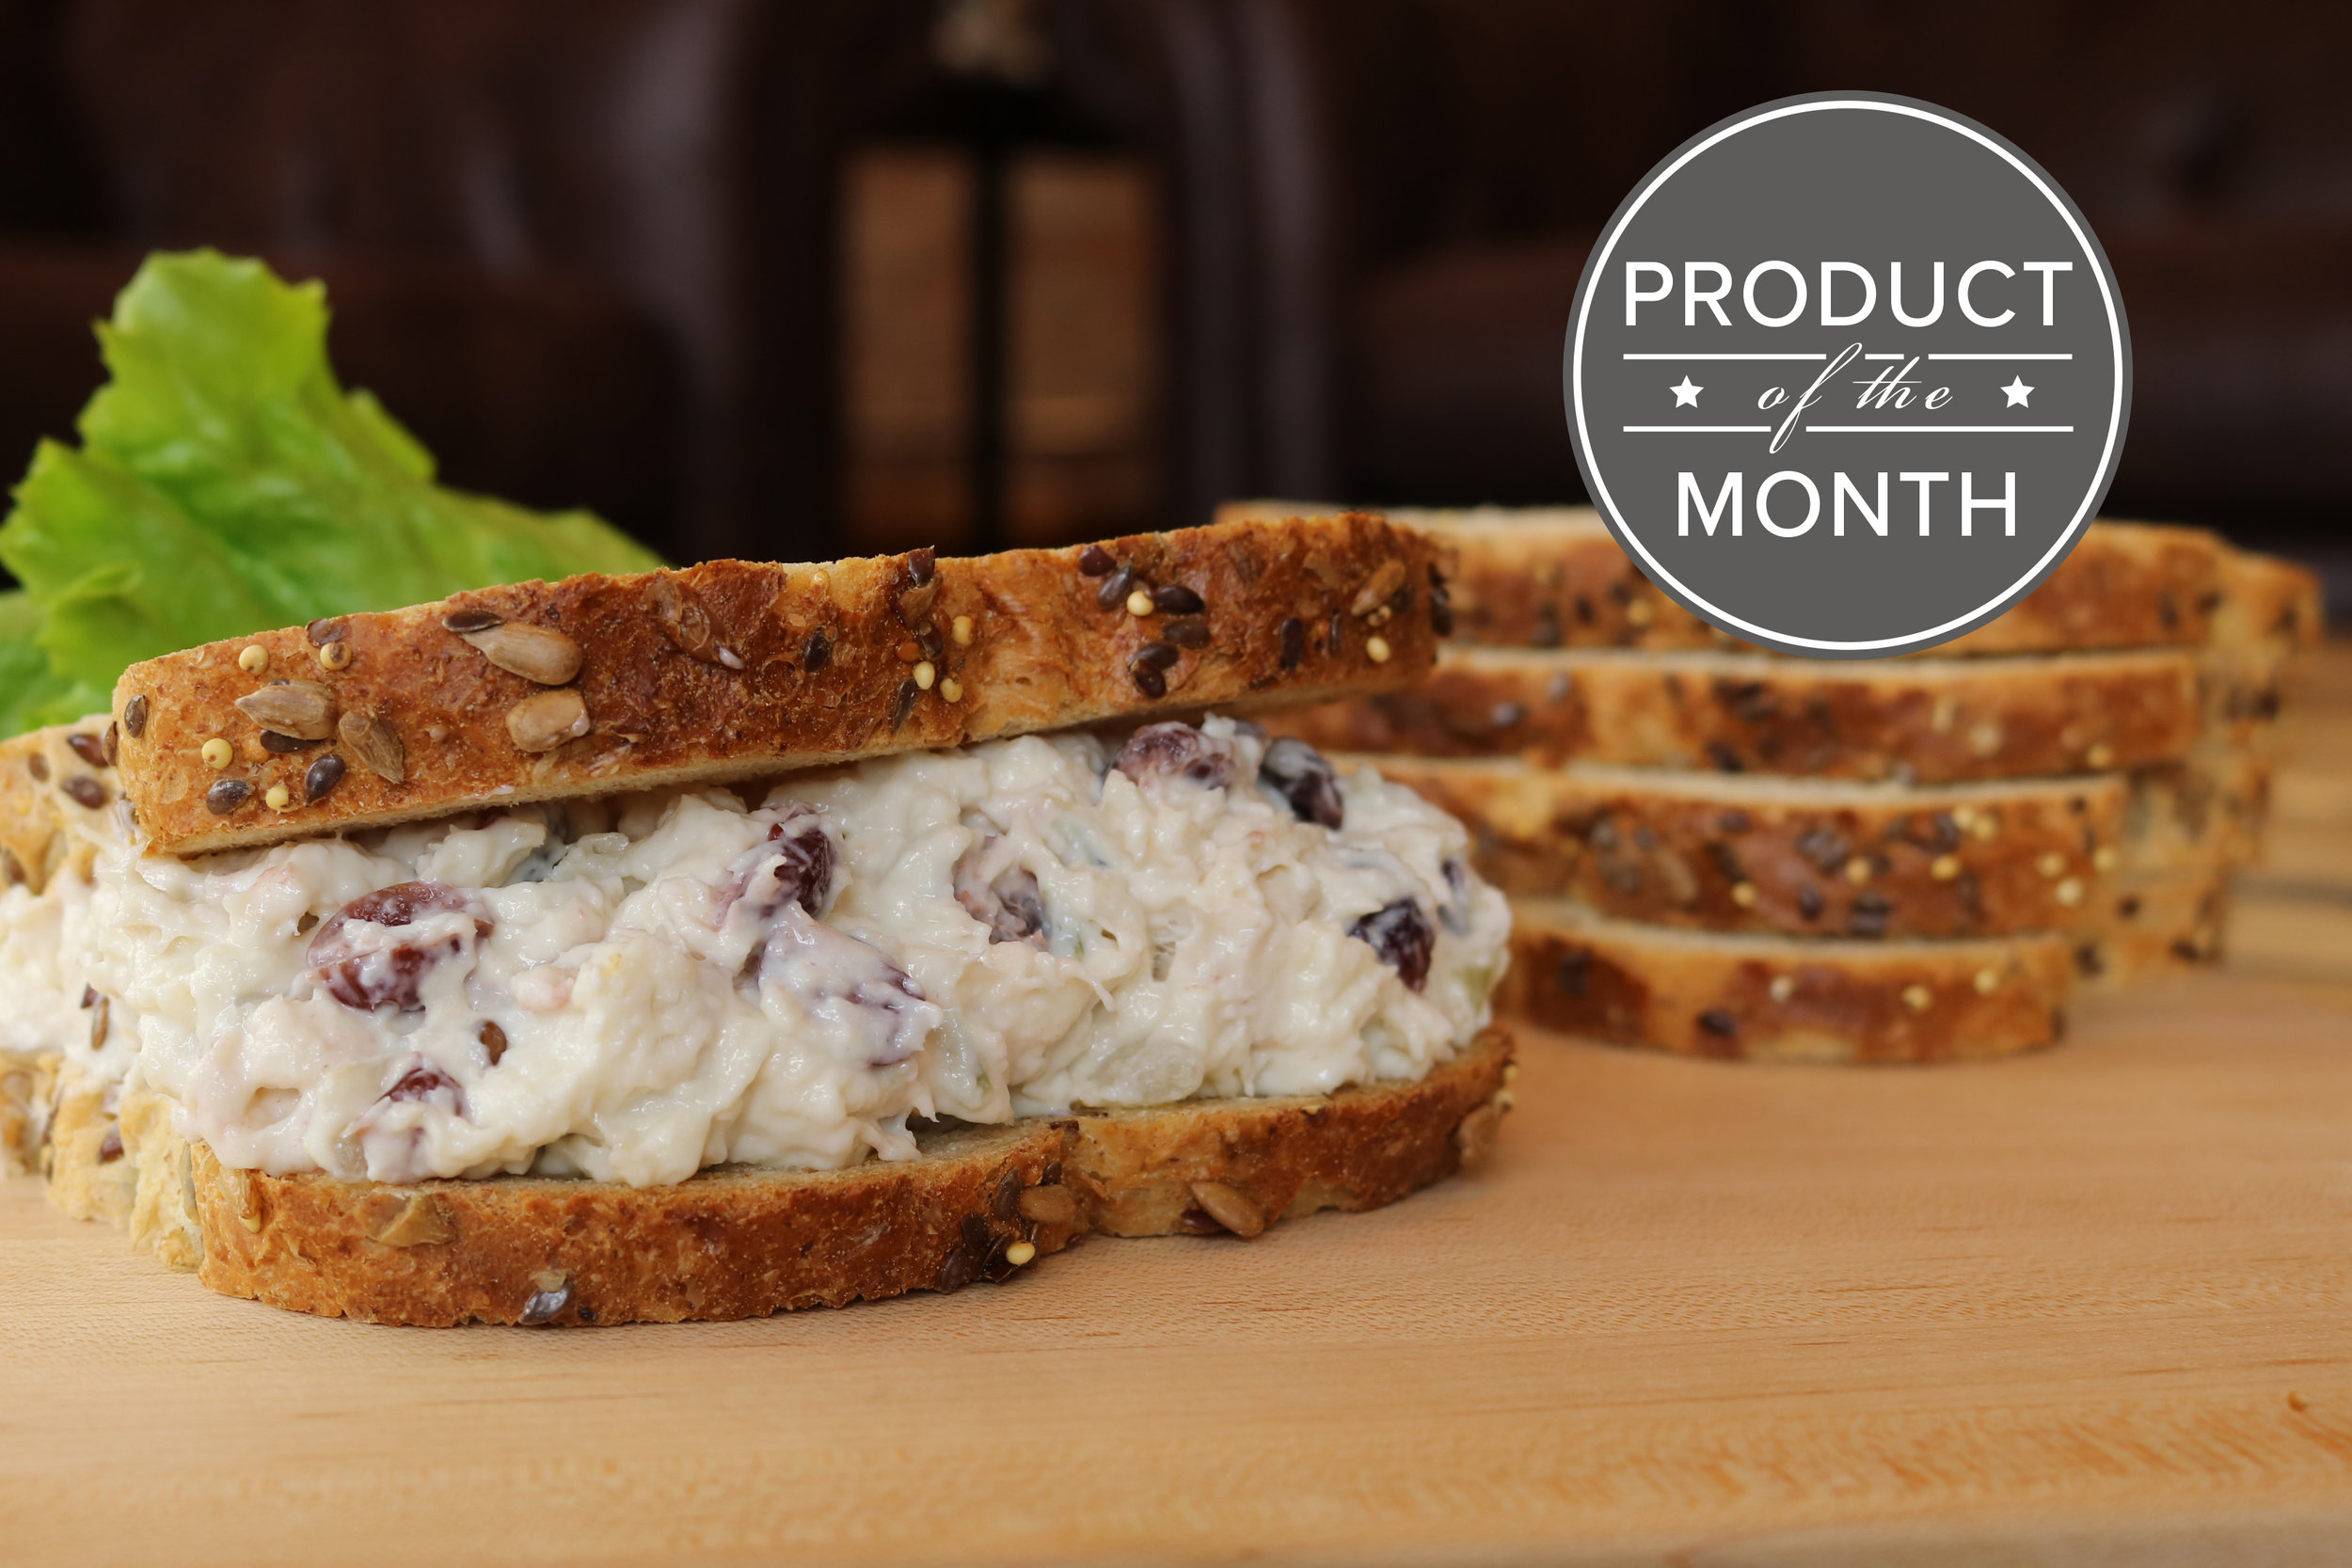 Mrs. Gerry's White Chicken Salad with Cranberries